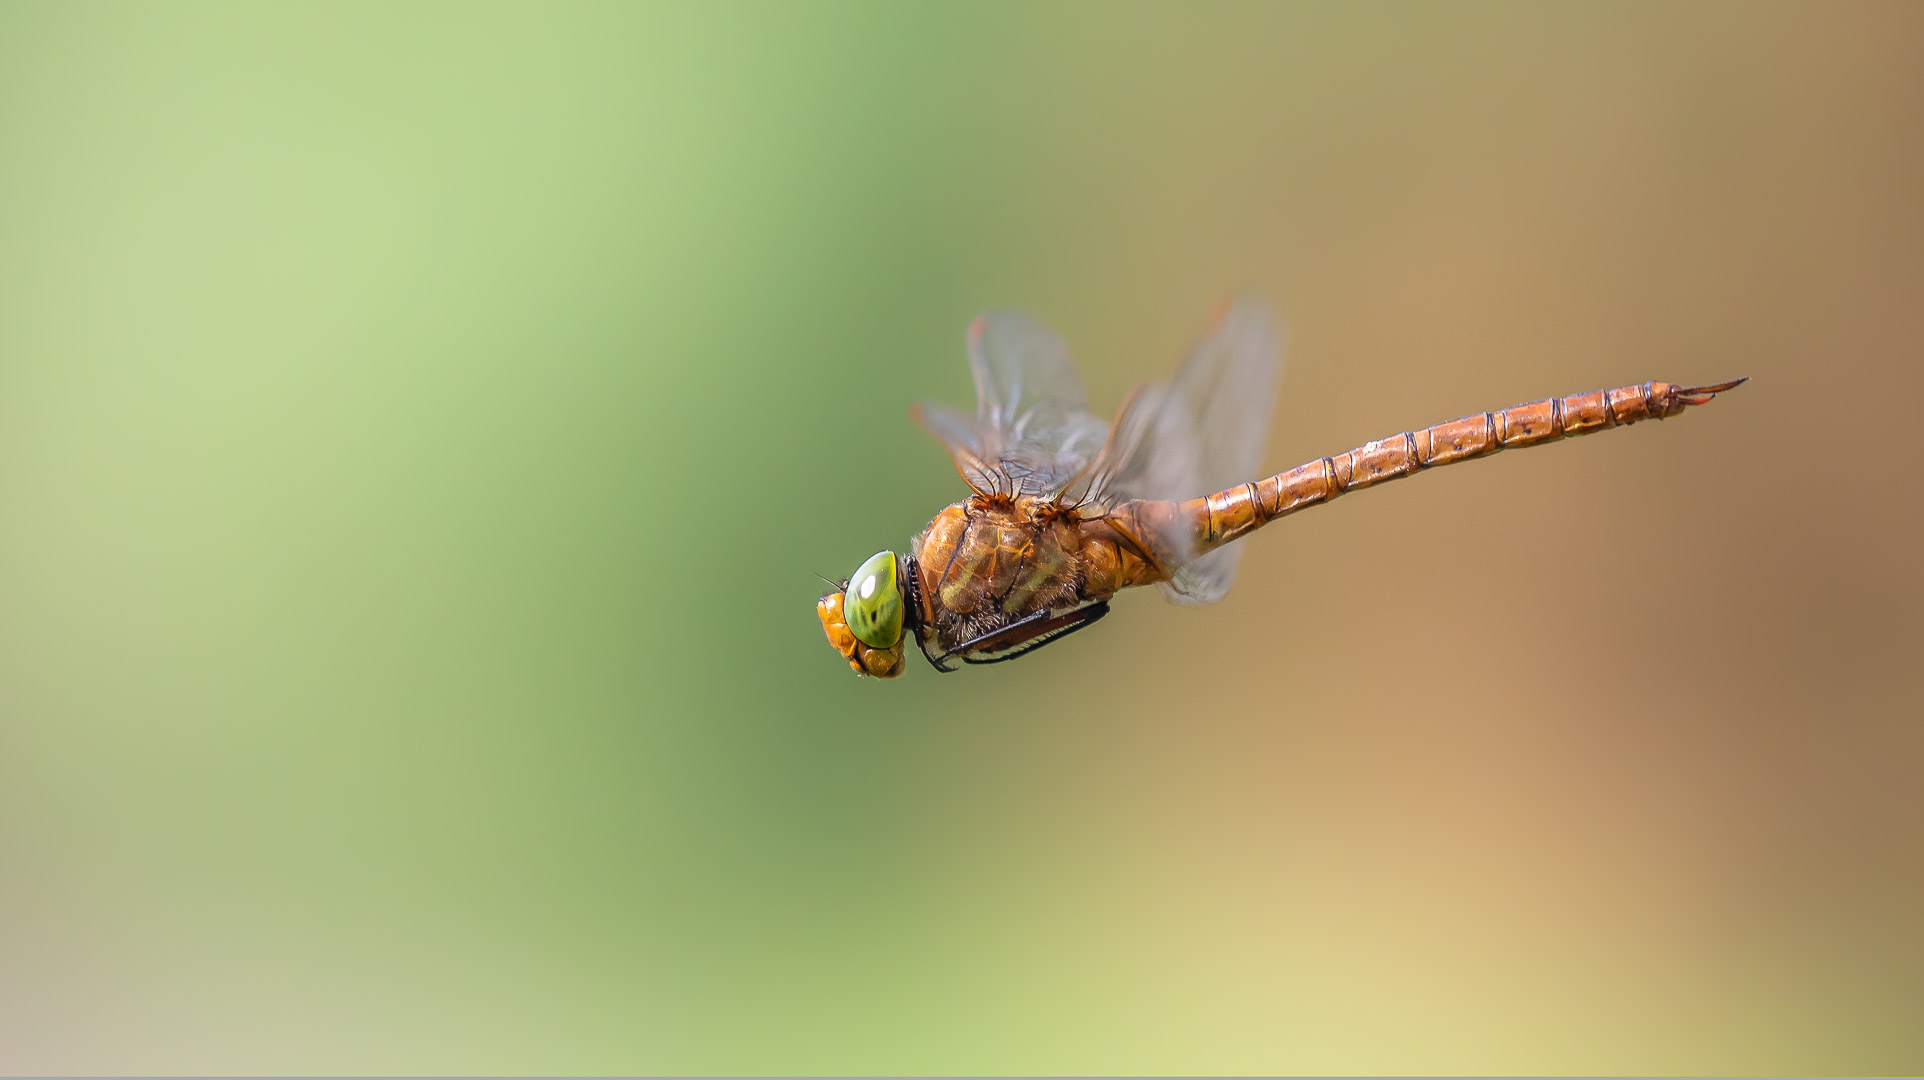 Keilfleck-Mosaikjungfer im Flug / flying green-eyed hawker